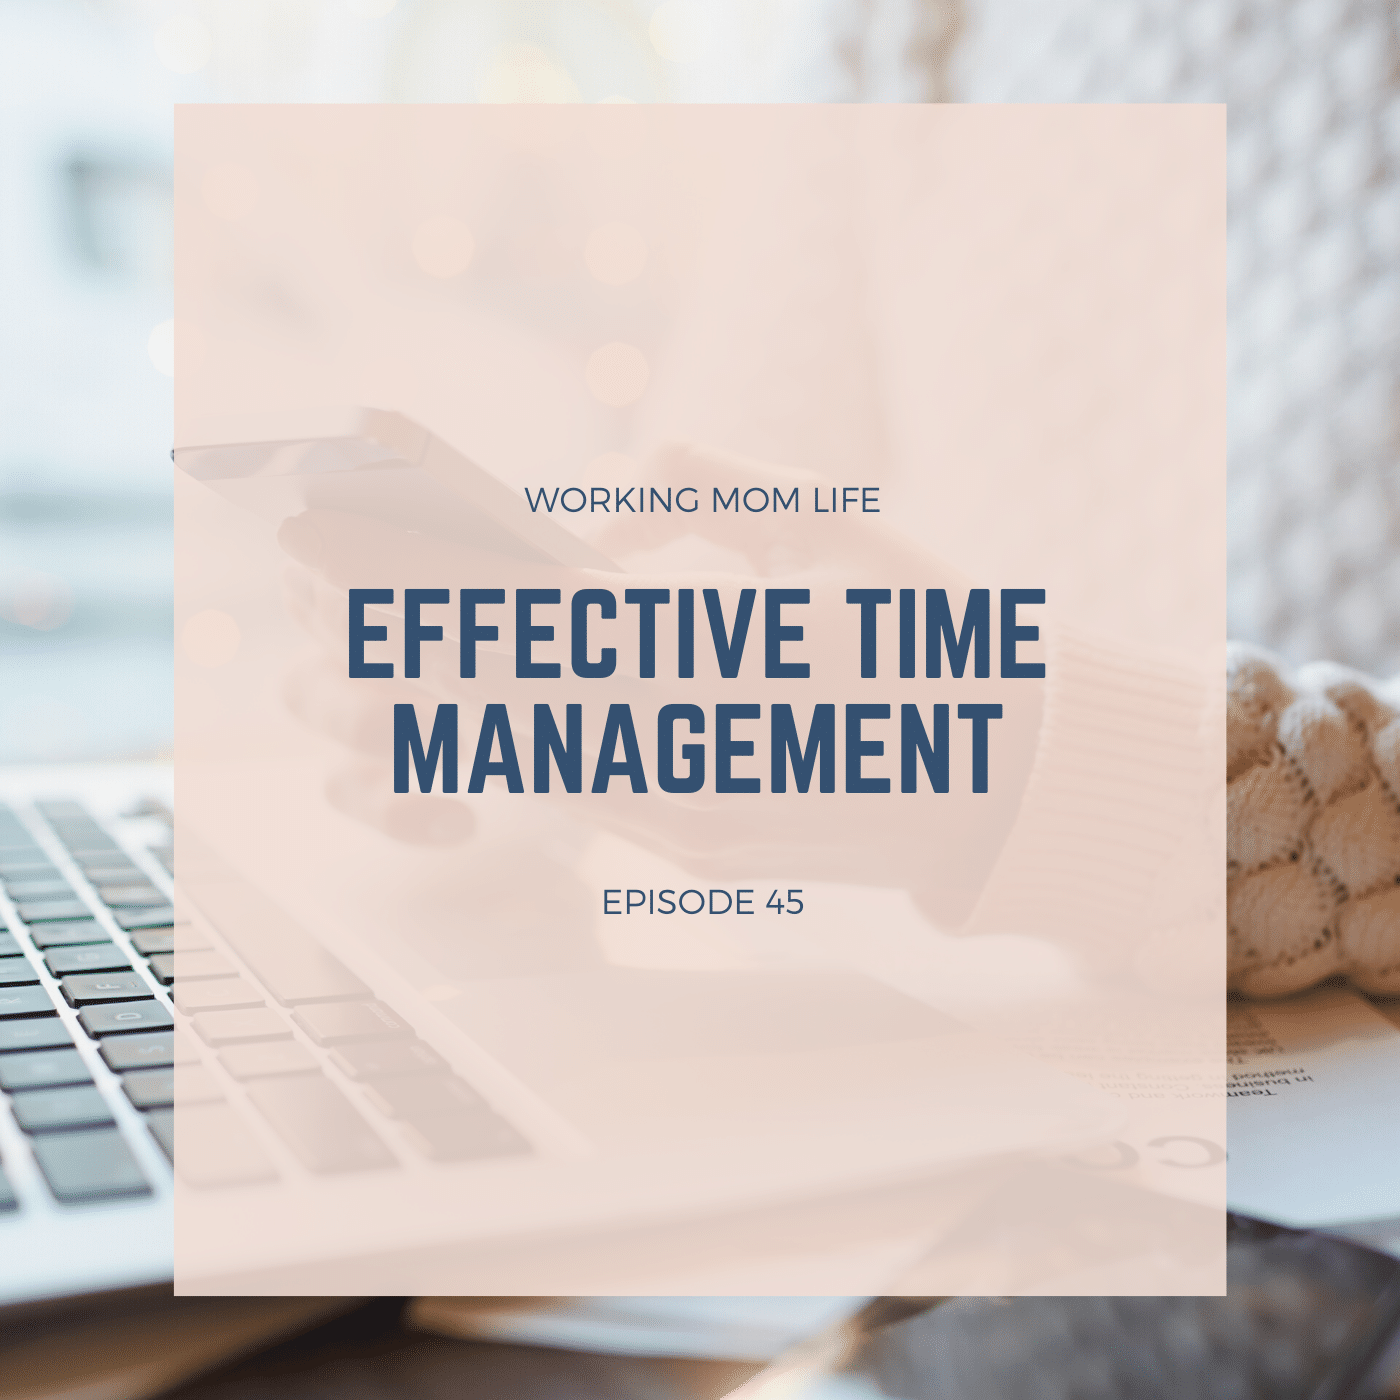 Episode 45 – Effective Time Management